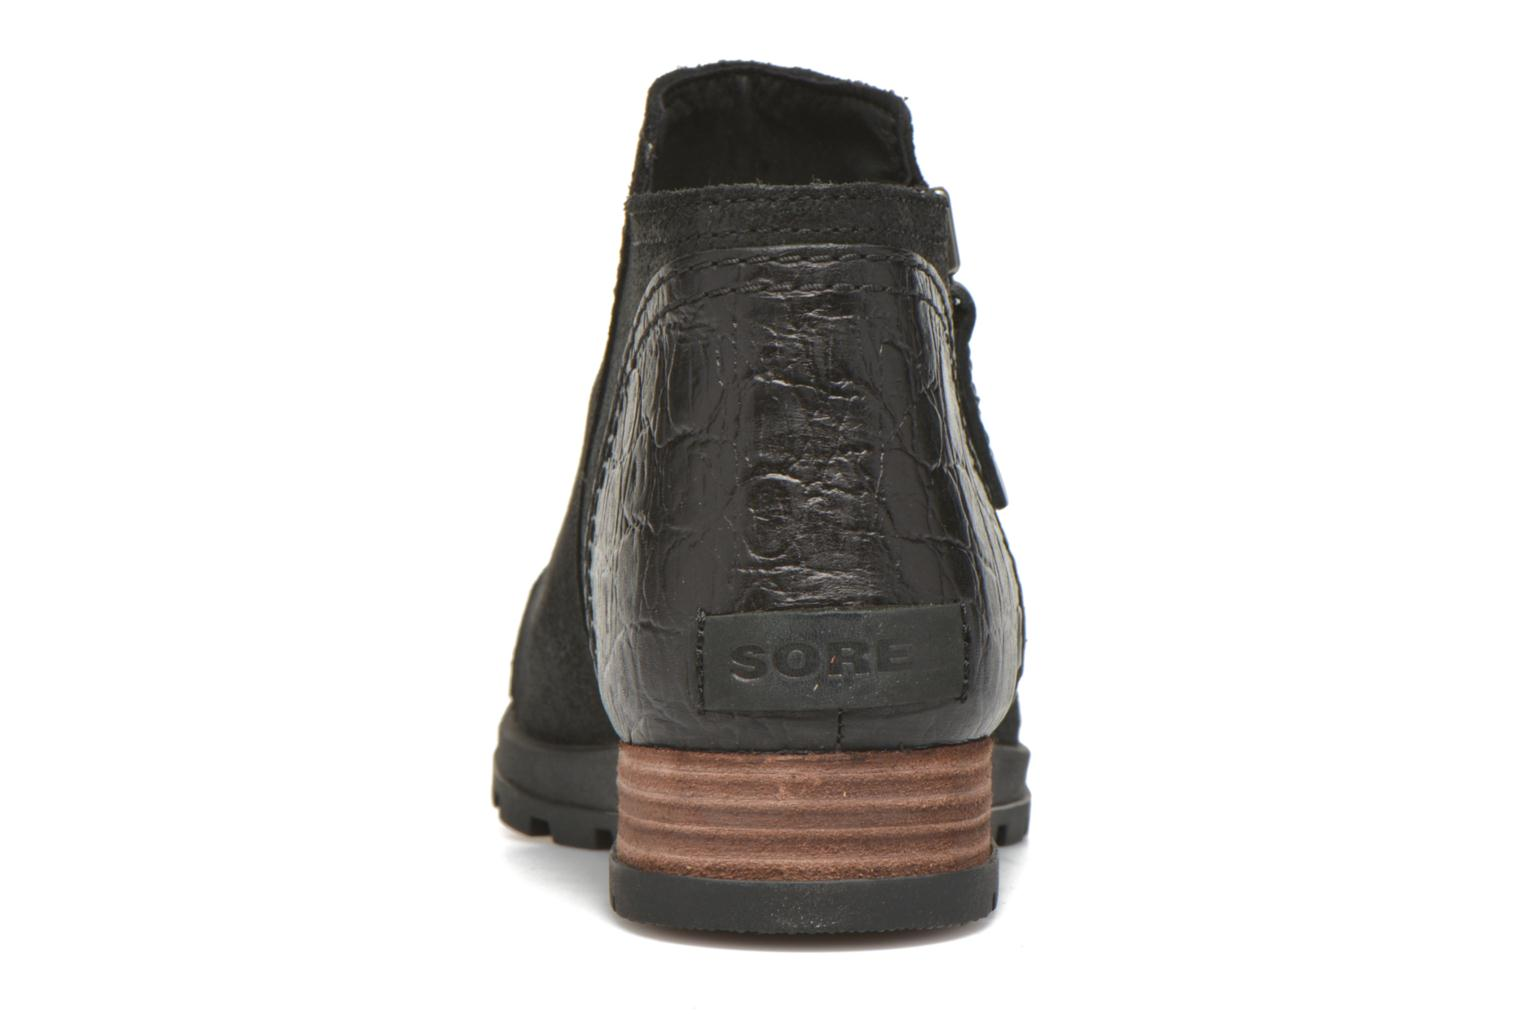 Sorel Major Low Black, Kettle